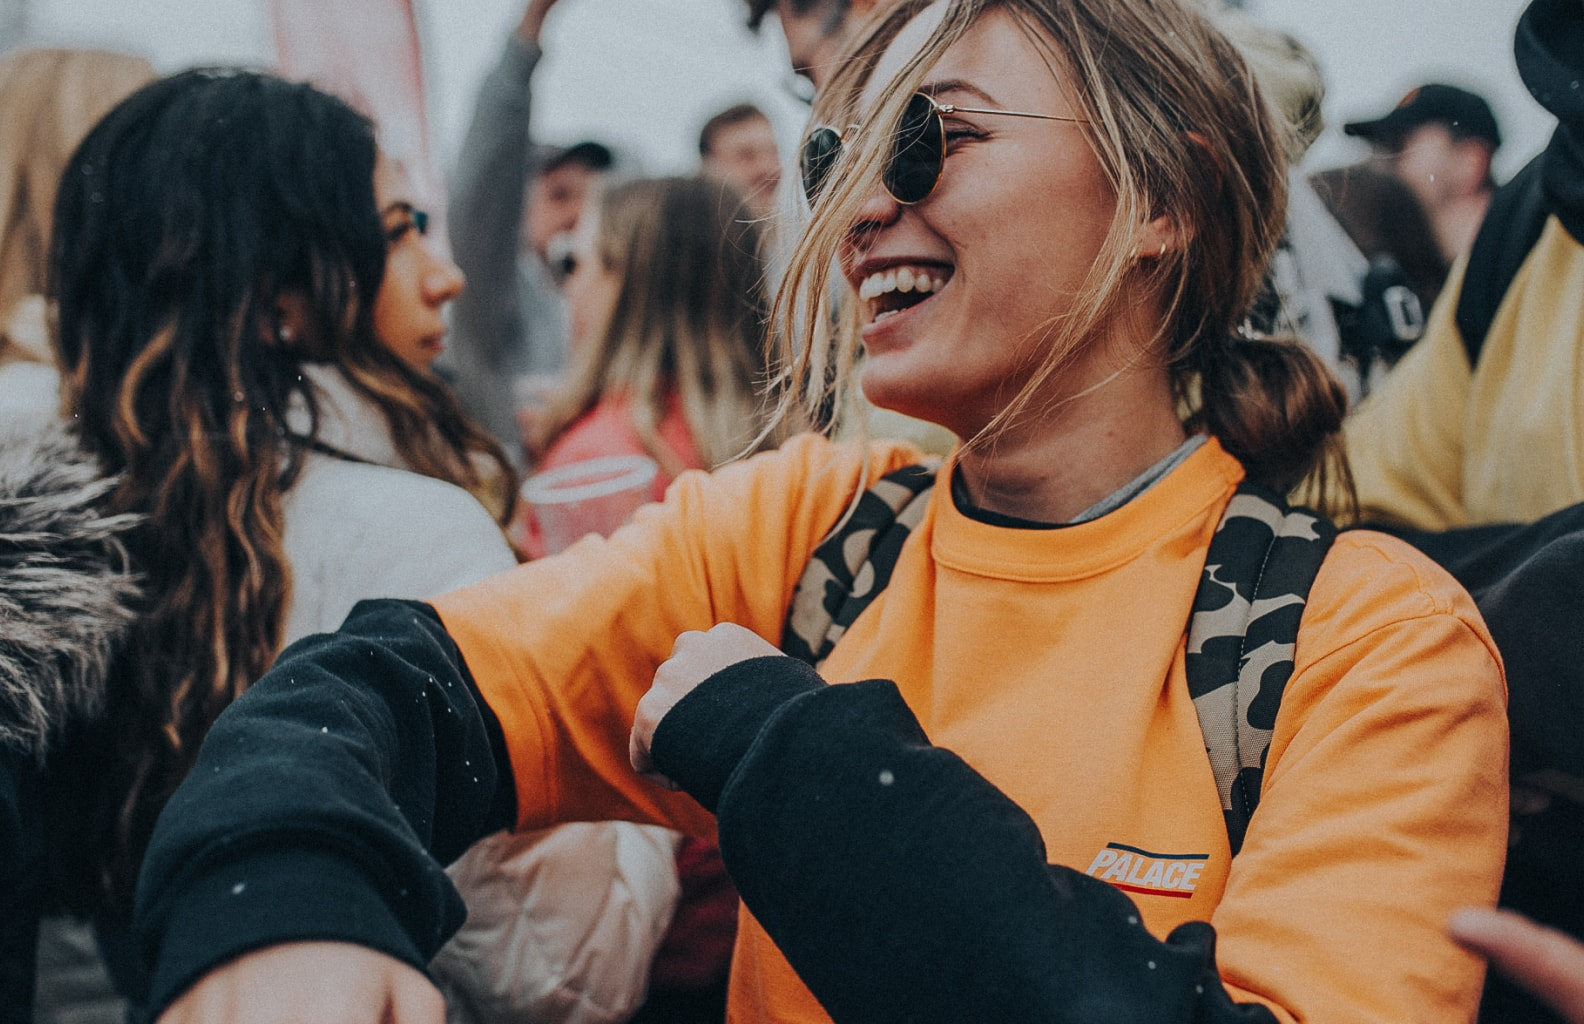 a girl smiling at a festival